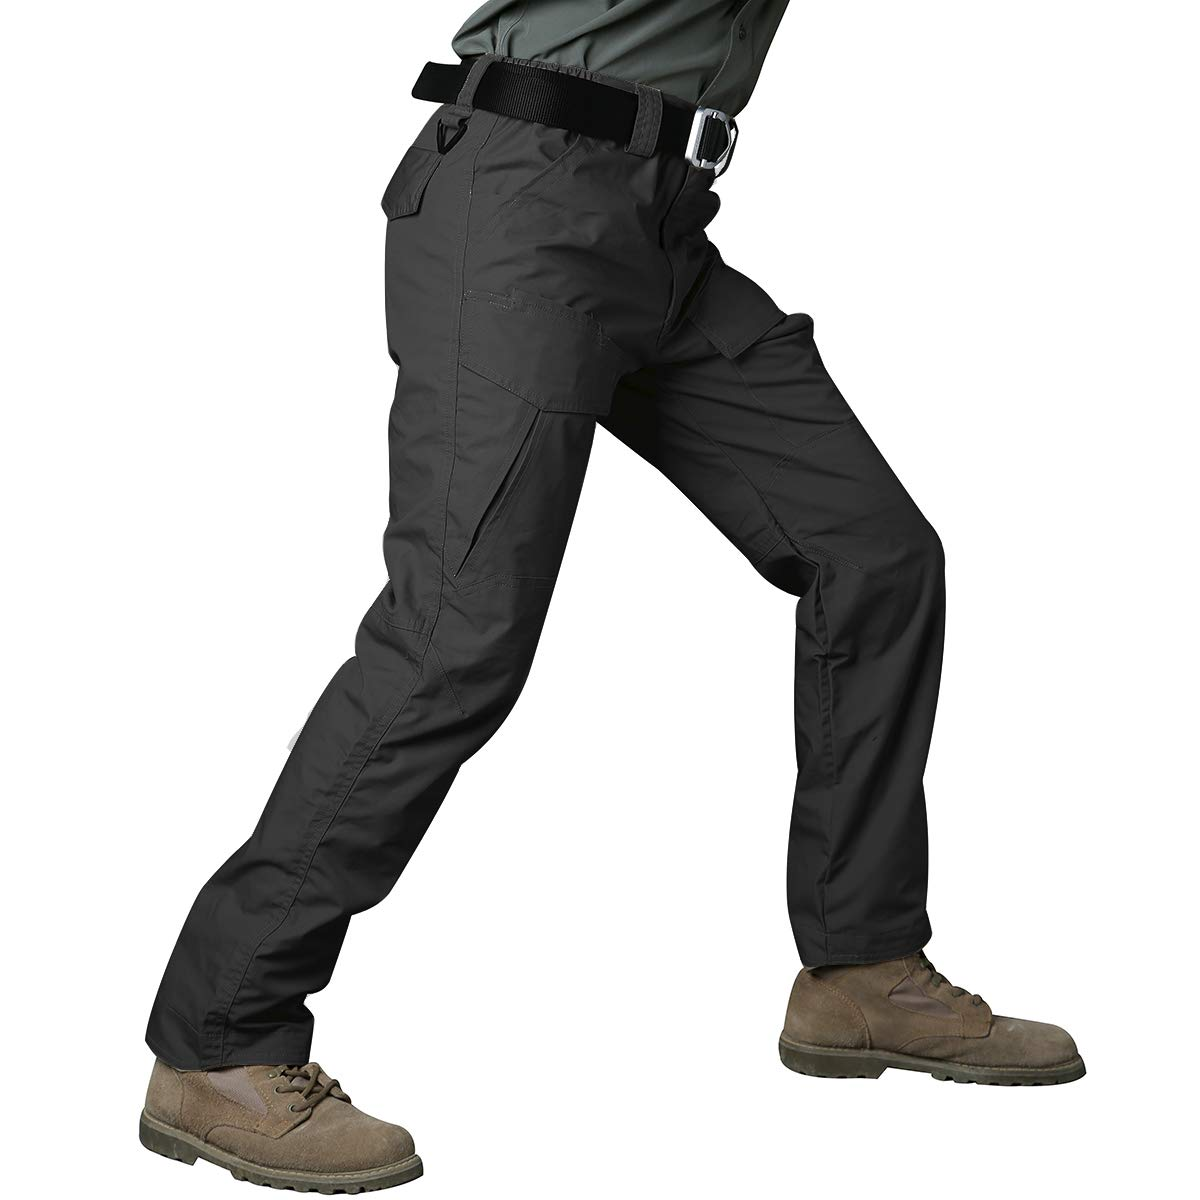 CARWORNIC Gear Mens Tactical Cargo Pants Waterpoof Lightweight Rip Stop EDC Military Combat Trousers